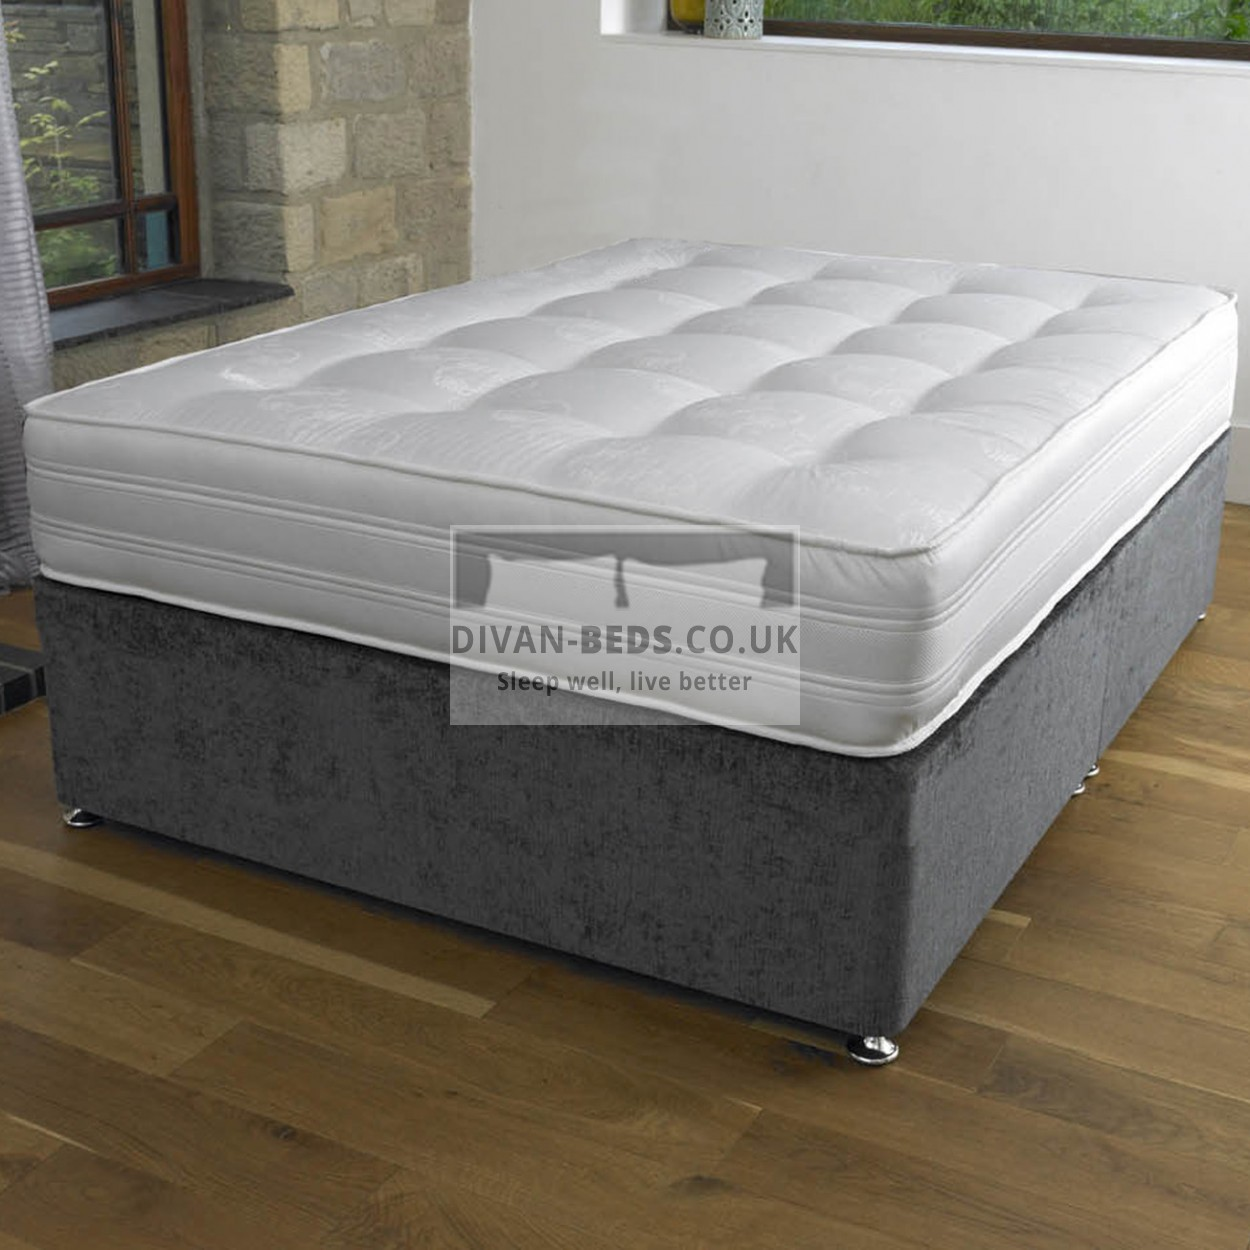 Firm Orthopedic Open Coil Spring Mattress Guaranteed Cheapest Free Amp Fast Delivery